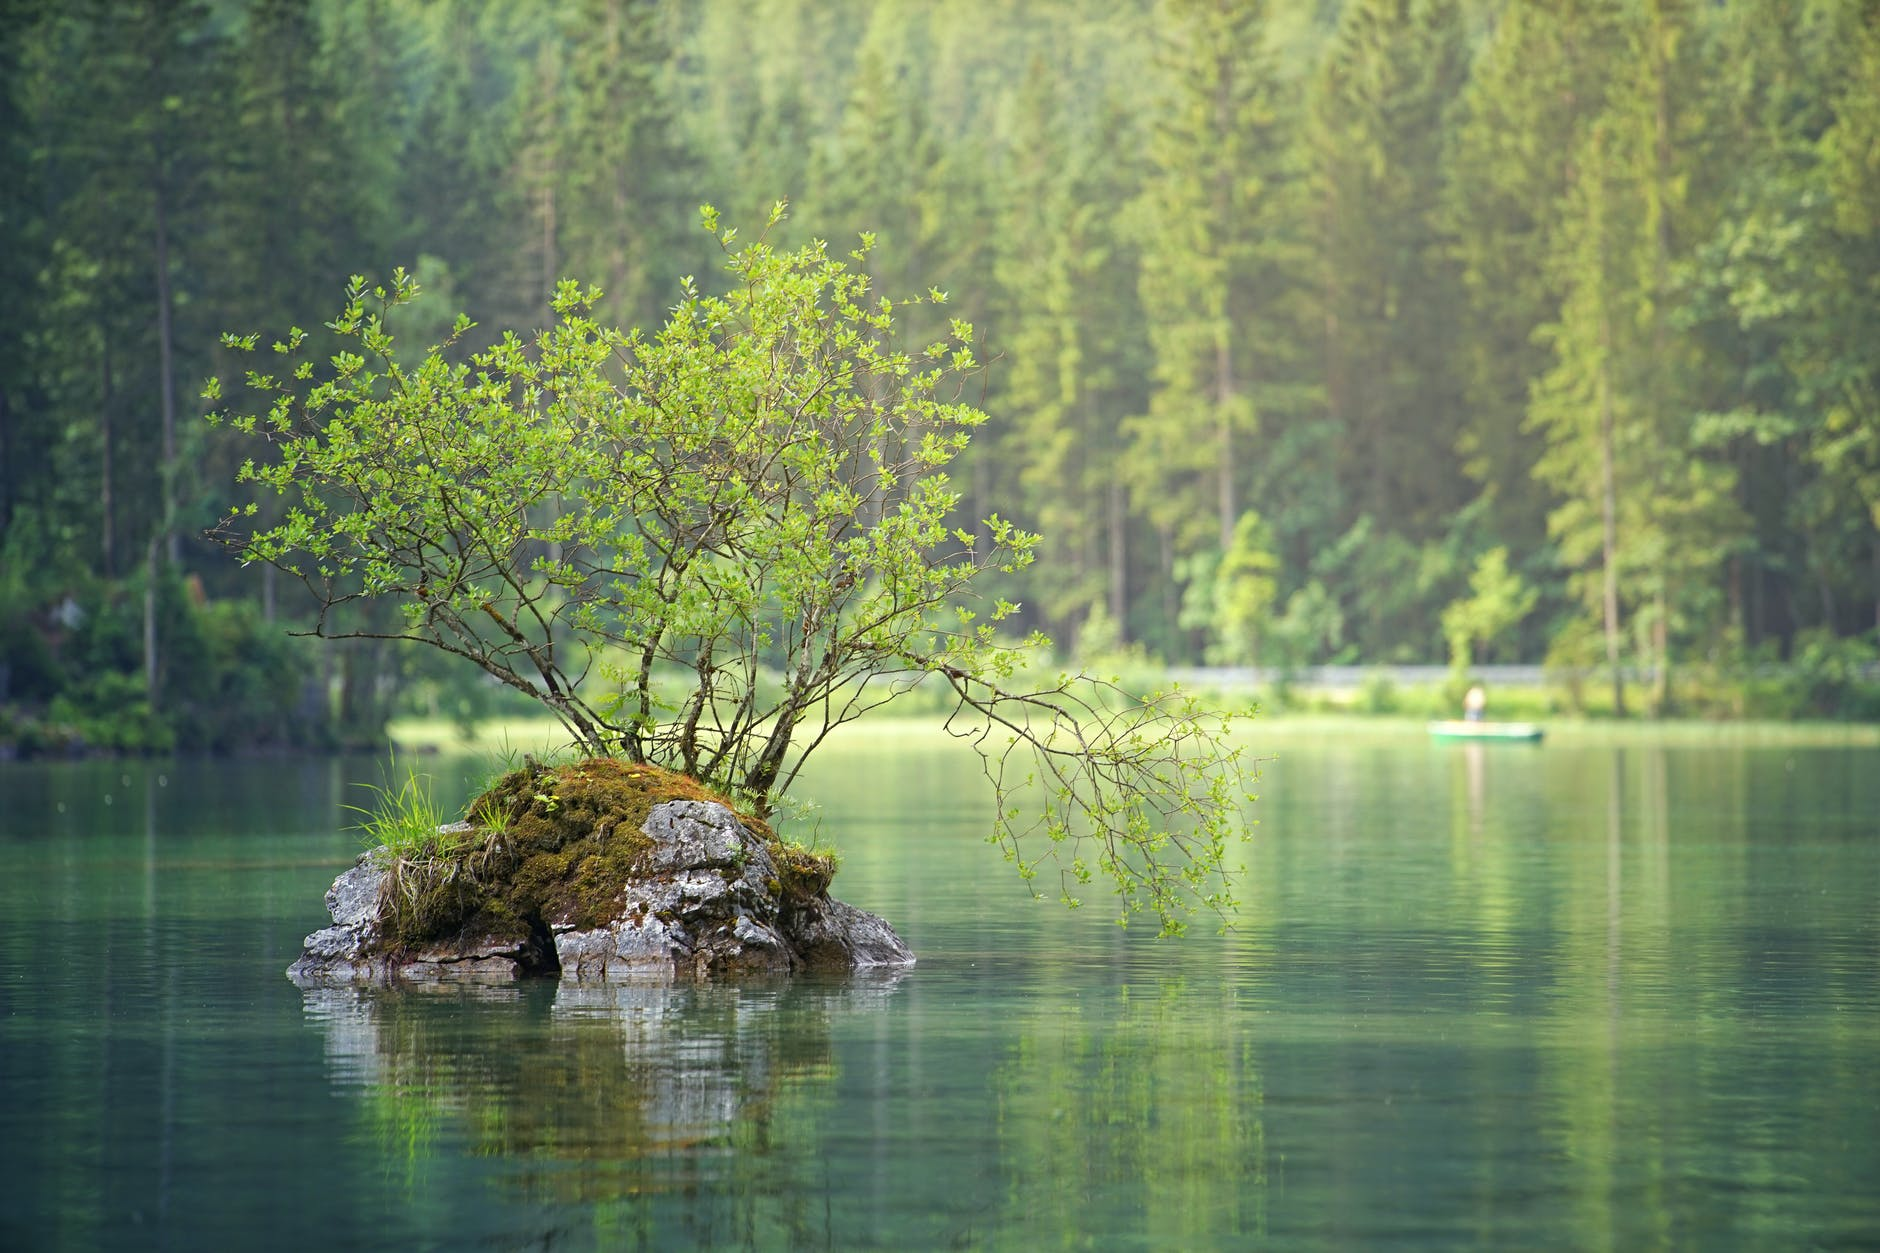 green leafed plant on body of water